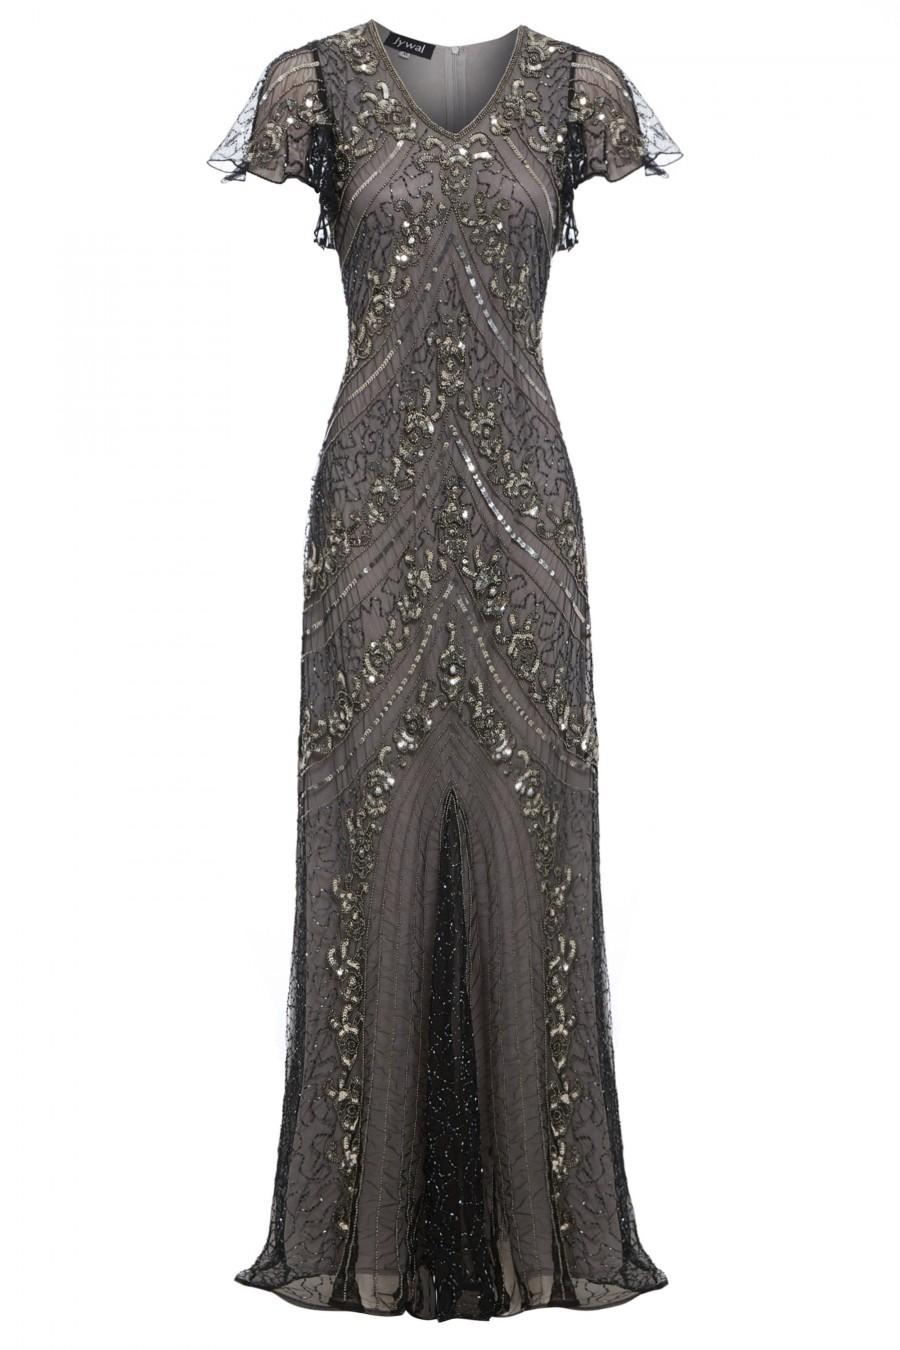 Lima Embellished Fler Dress 1920s Great Gatsby Inspired Downton Abbey Wedding Ball Gown Grey Evening Plus Size S L